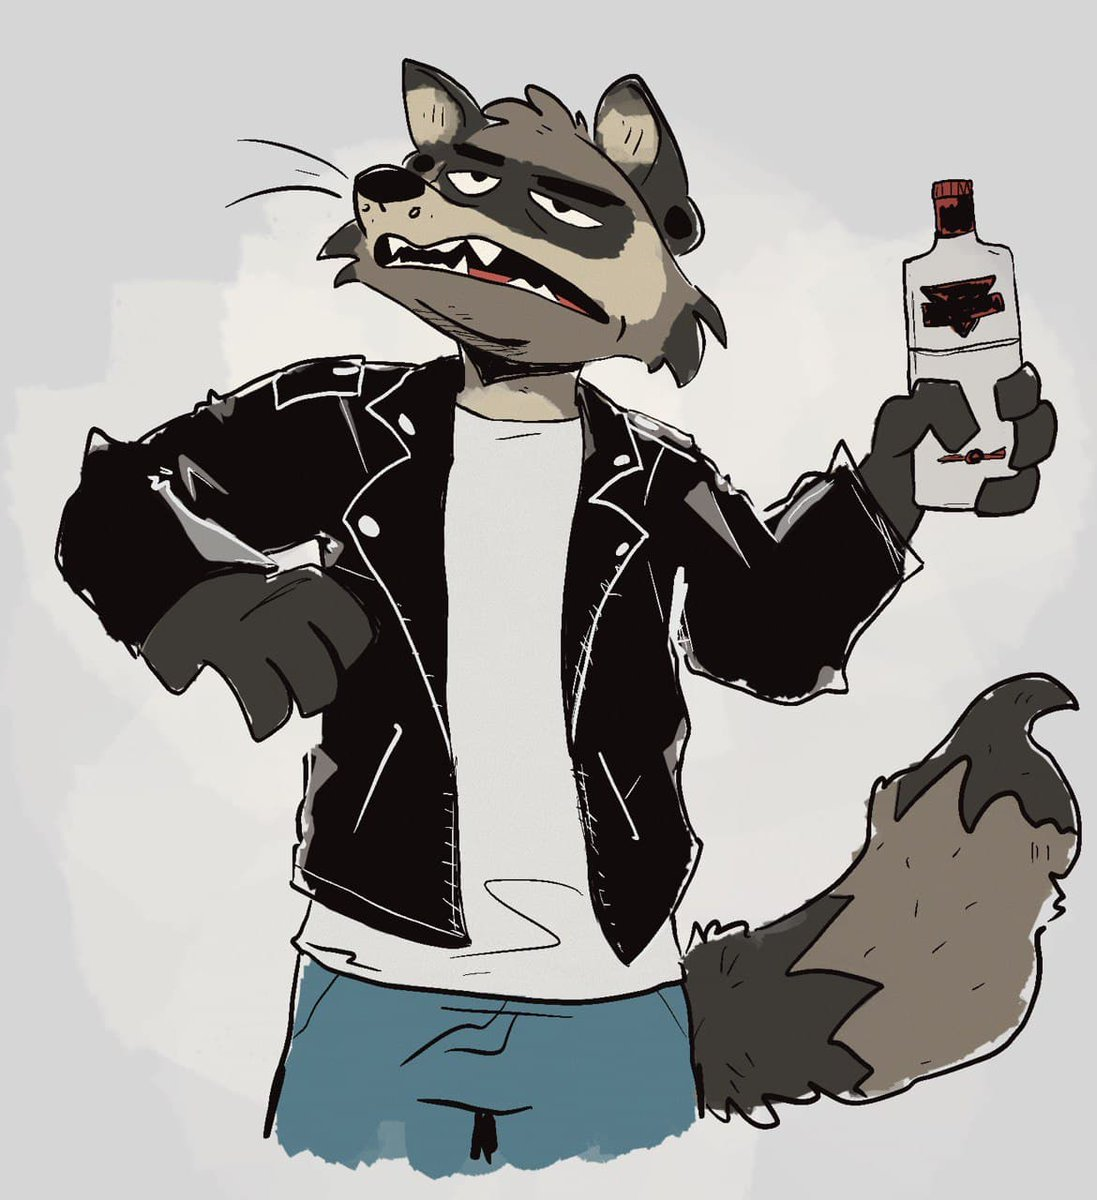 This is me according to yall and ngl im vibin with him 🦝🍺💦 twitter.com/dingobutt2/sta…